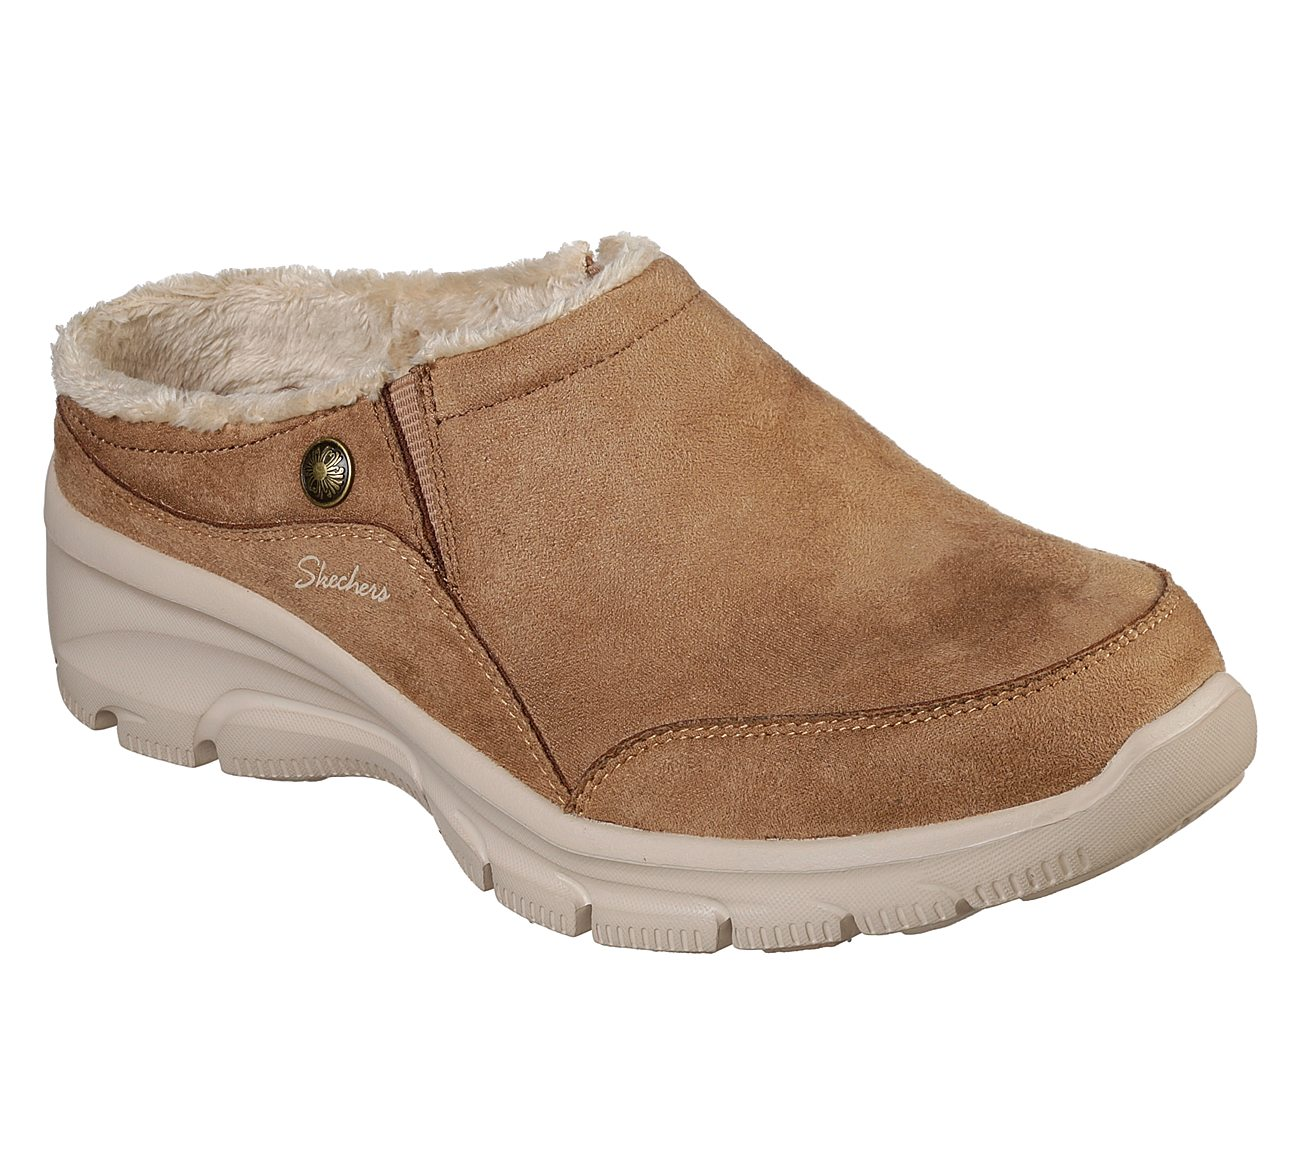 Buy SKECHERS Relaxed Fit: Easy Going